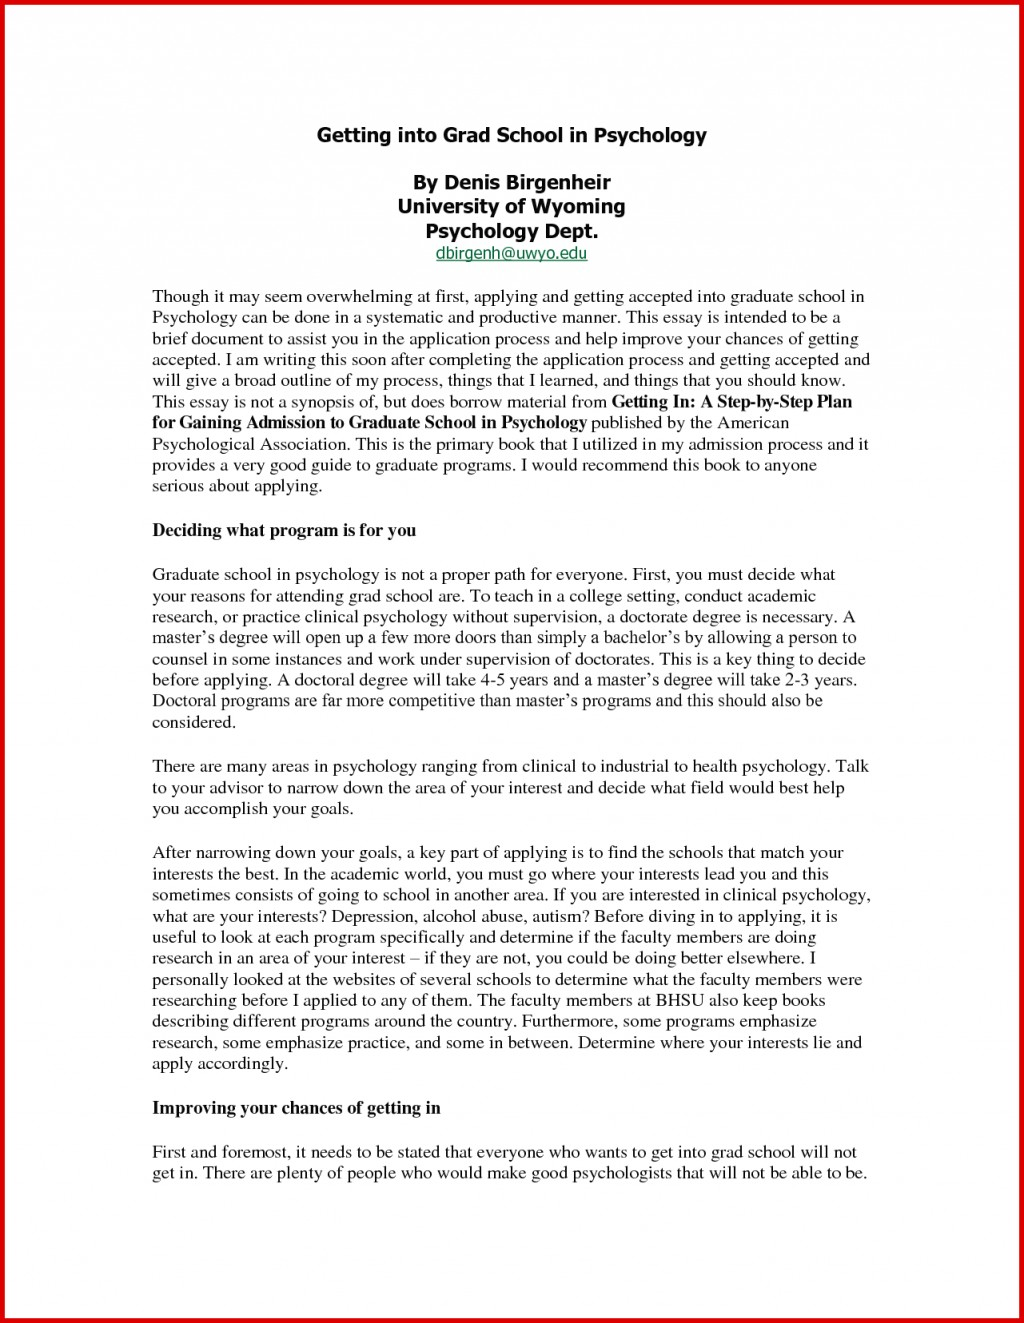 012 Academic Writingmple For Graduate School Unique The Essay Icse Essays If I Were Principal Of Example Frightening Sample Physical Therapy Diversity Examples Biology Large